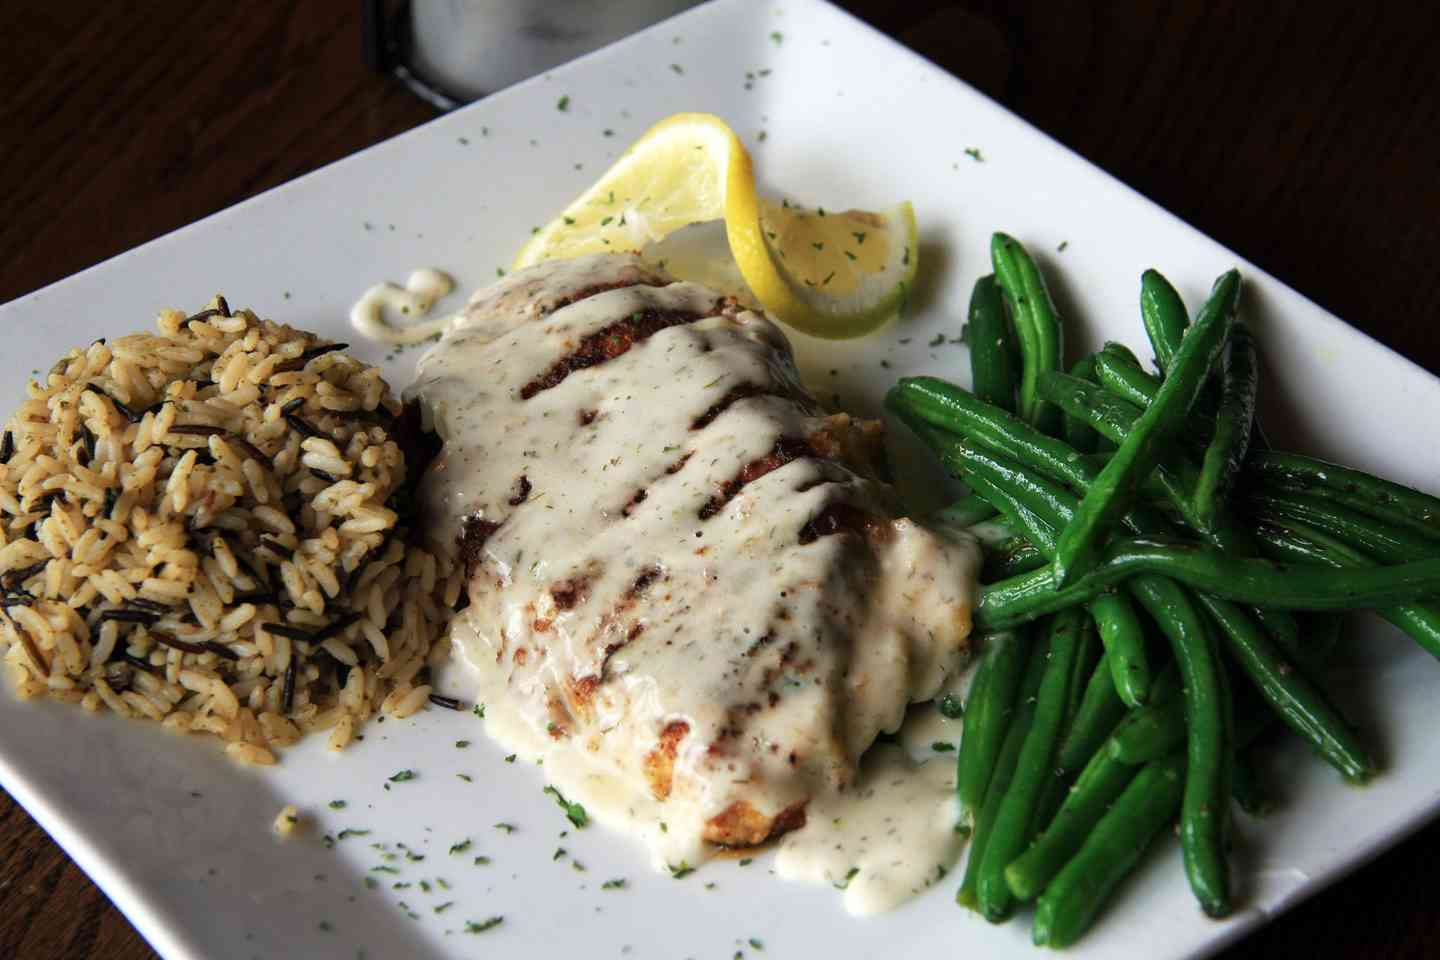 Parmesan Encrusted Pacific Cod with a Lemon Dill Beurre Blanc Sauce